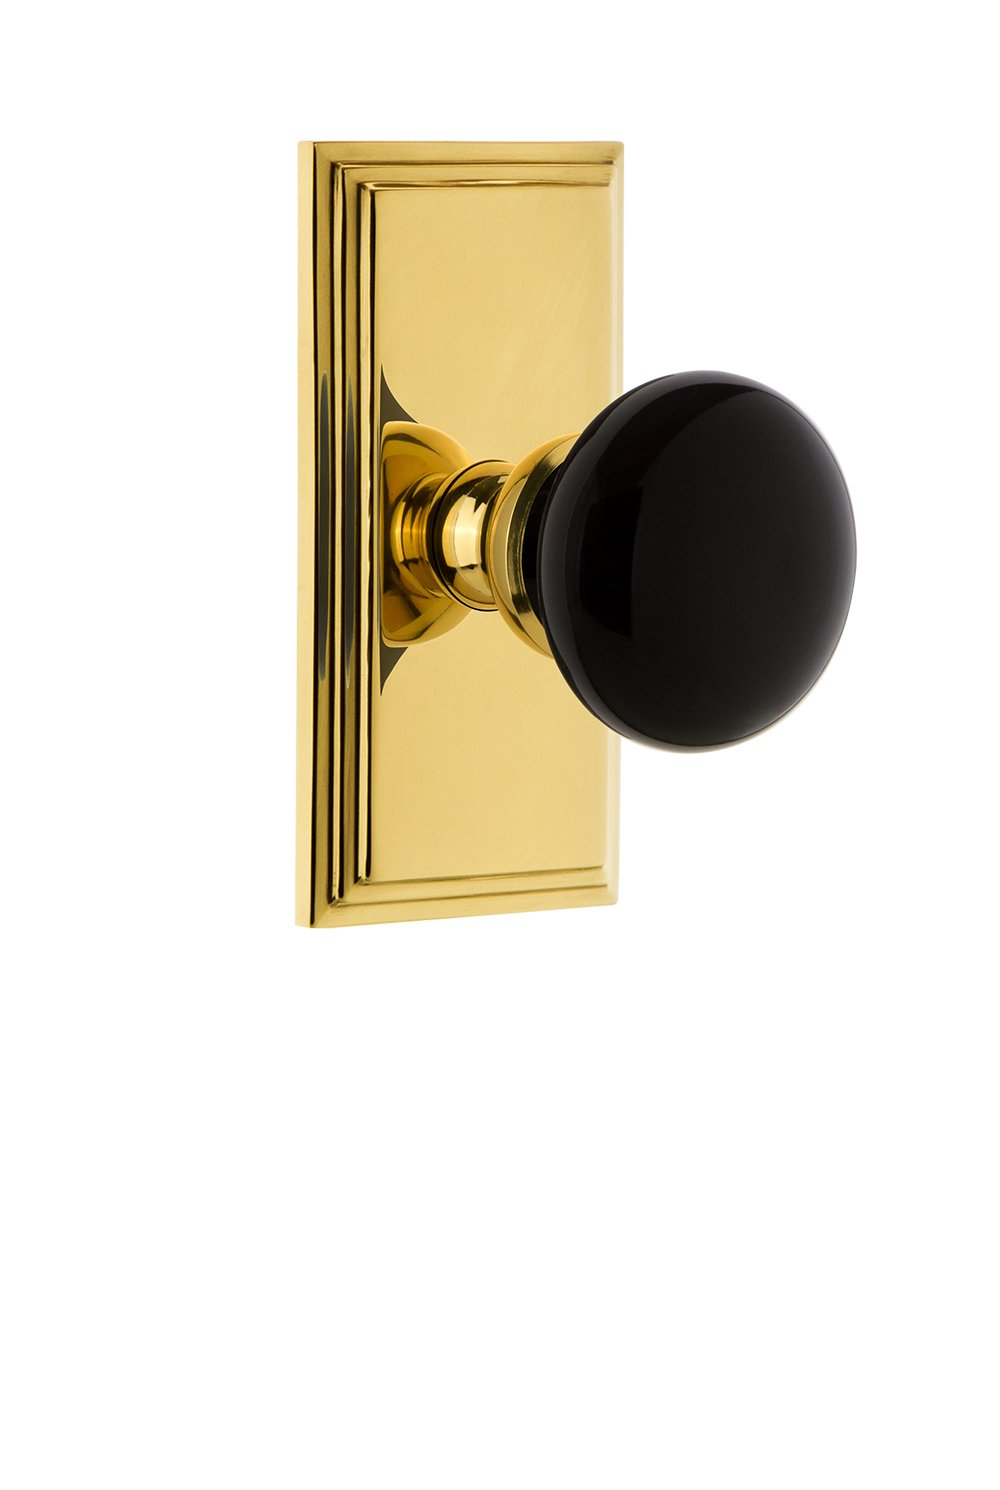 2.375 Lifetime Brass Grandeur Hardware 852909 Carre Rosette with Coventry Knob Privacy Backset Size